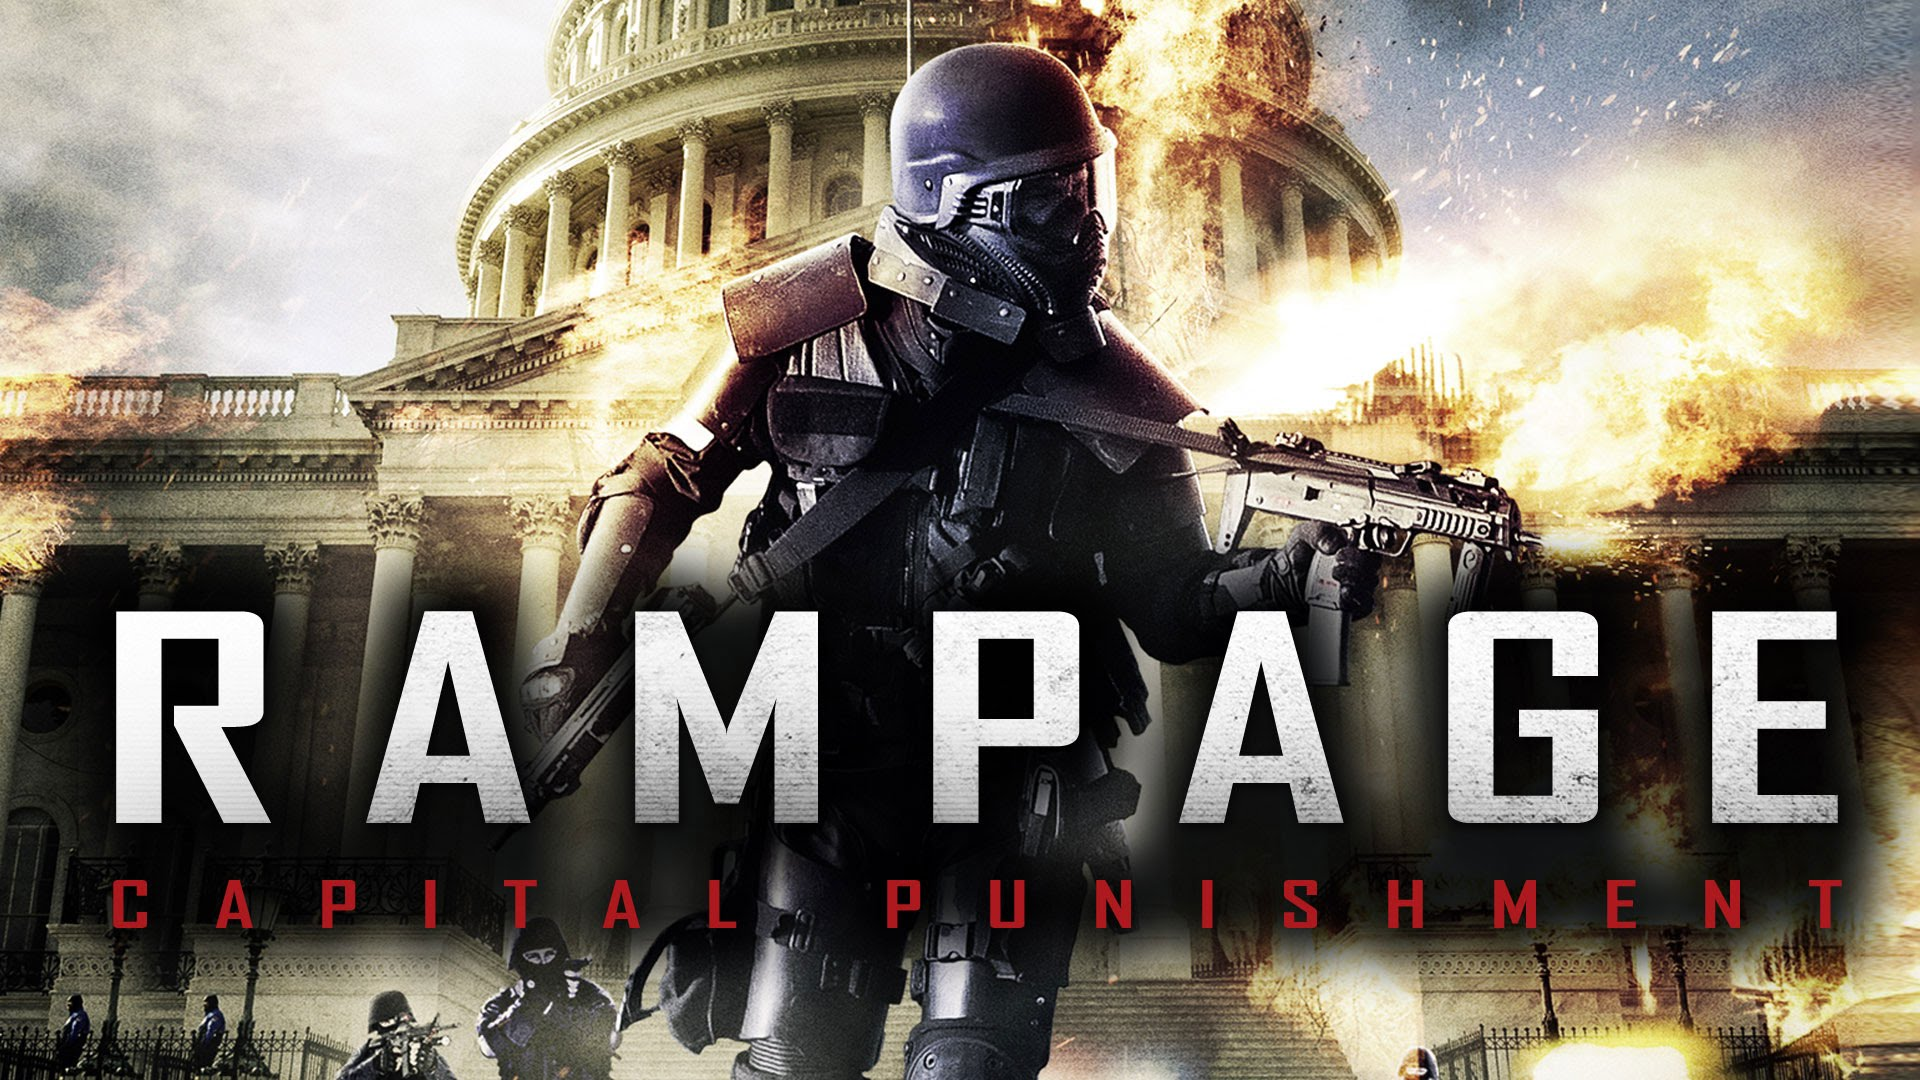 rampage capital punishment movie